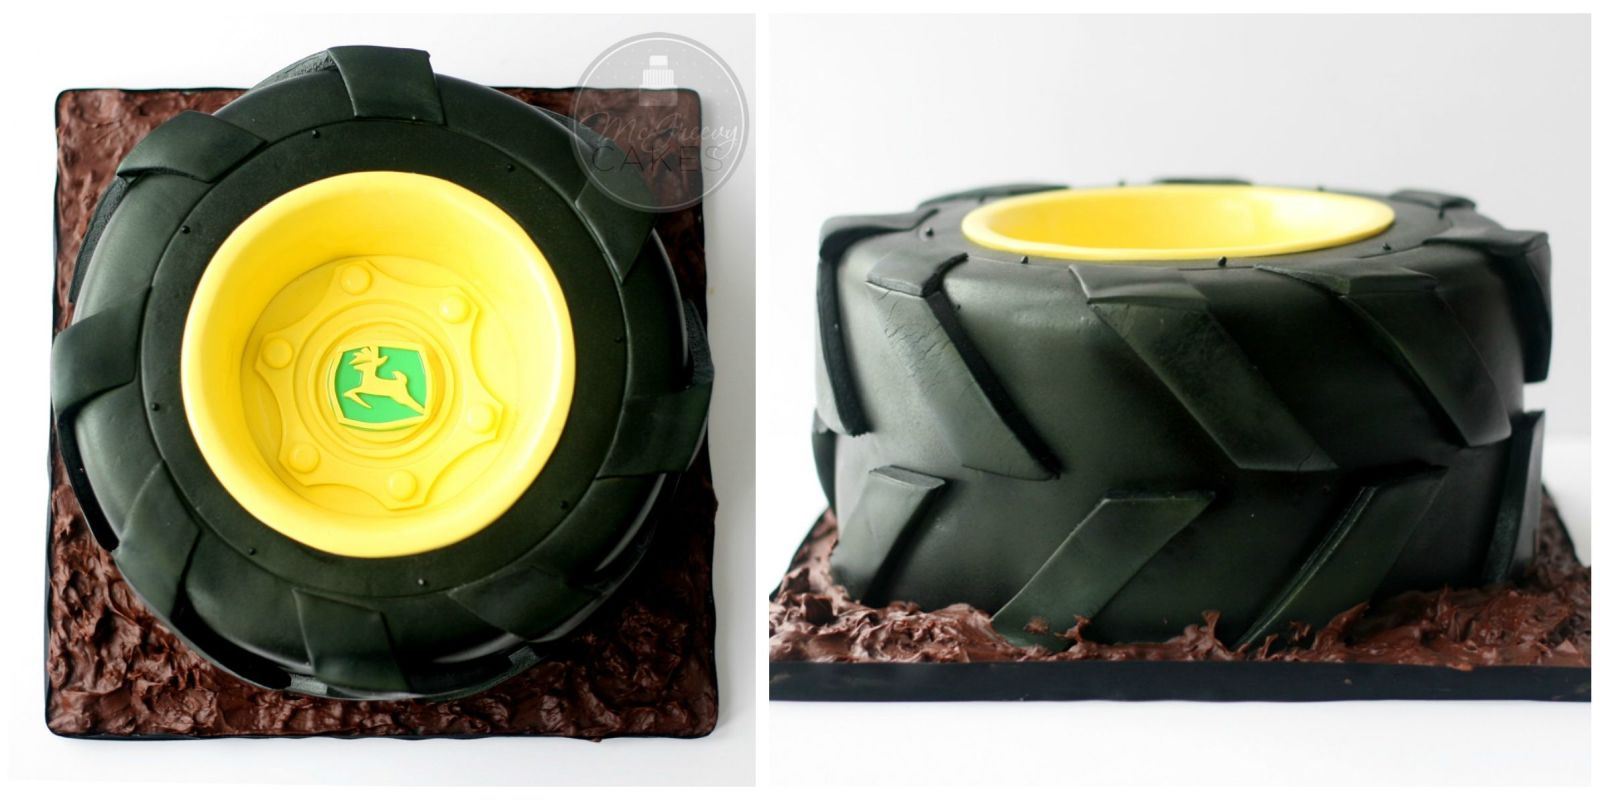 John Deere Tractor Tyre : How to make a tractor tire cake decorating john deere